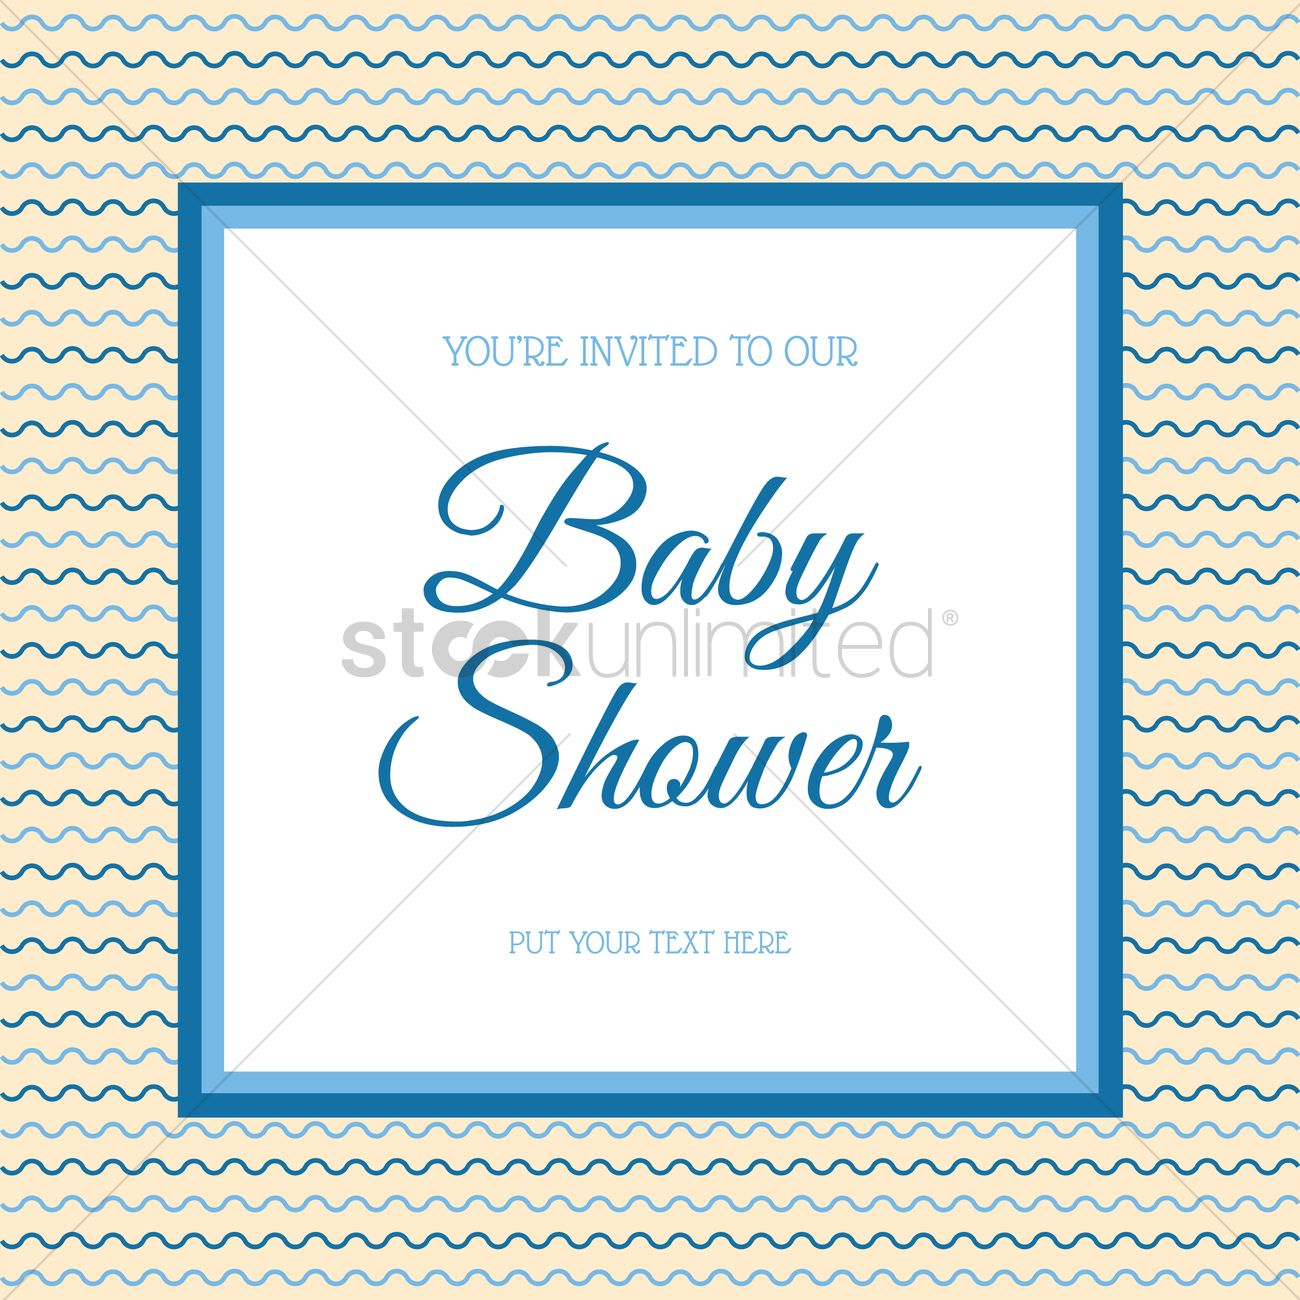 Baby shower invitation vector image 1795964 stockunlimited baby shower invitation vector graphic stopboris Choice Image